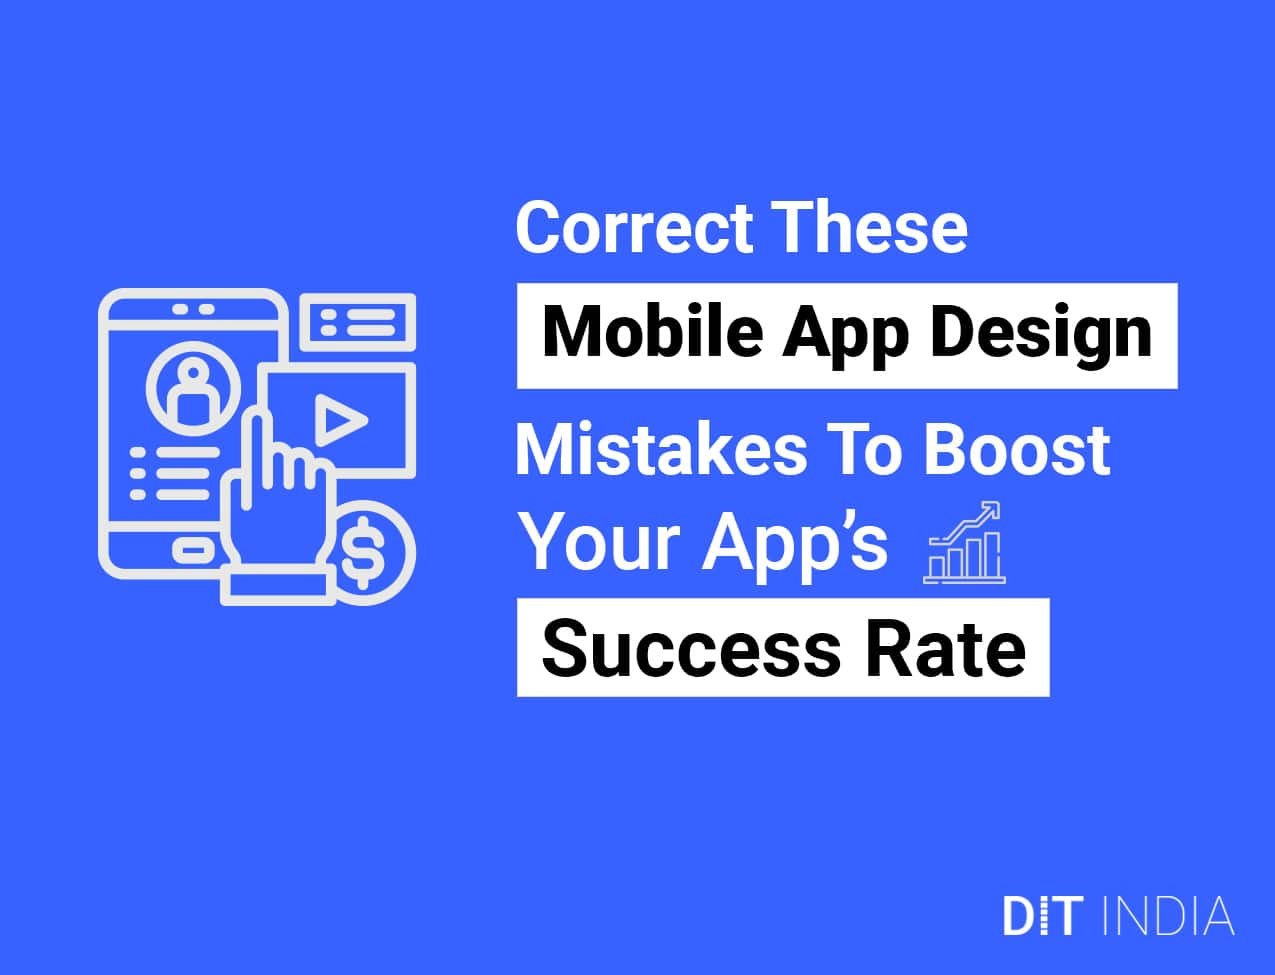 Correct These Mobile App Design Mistakes To Boost Your App's Success Rate